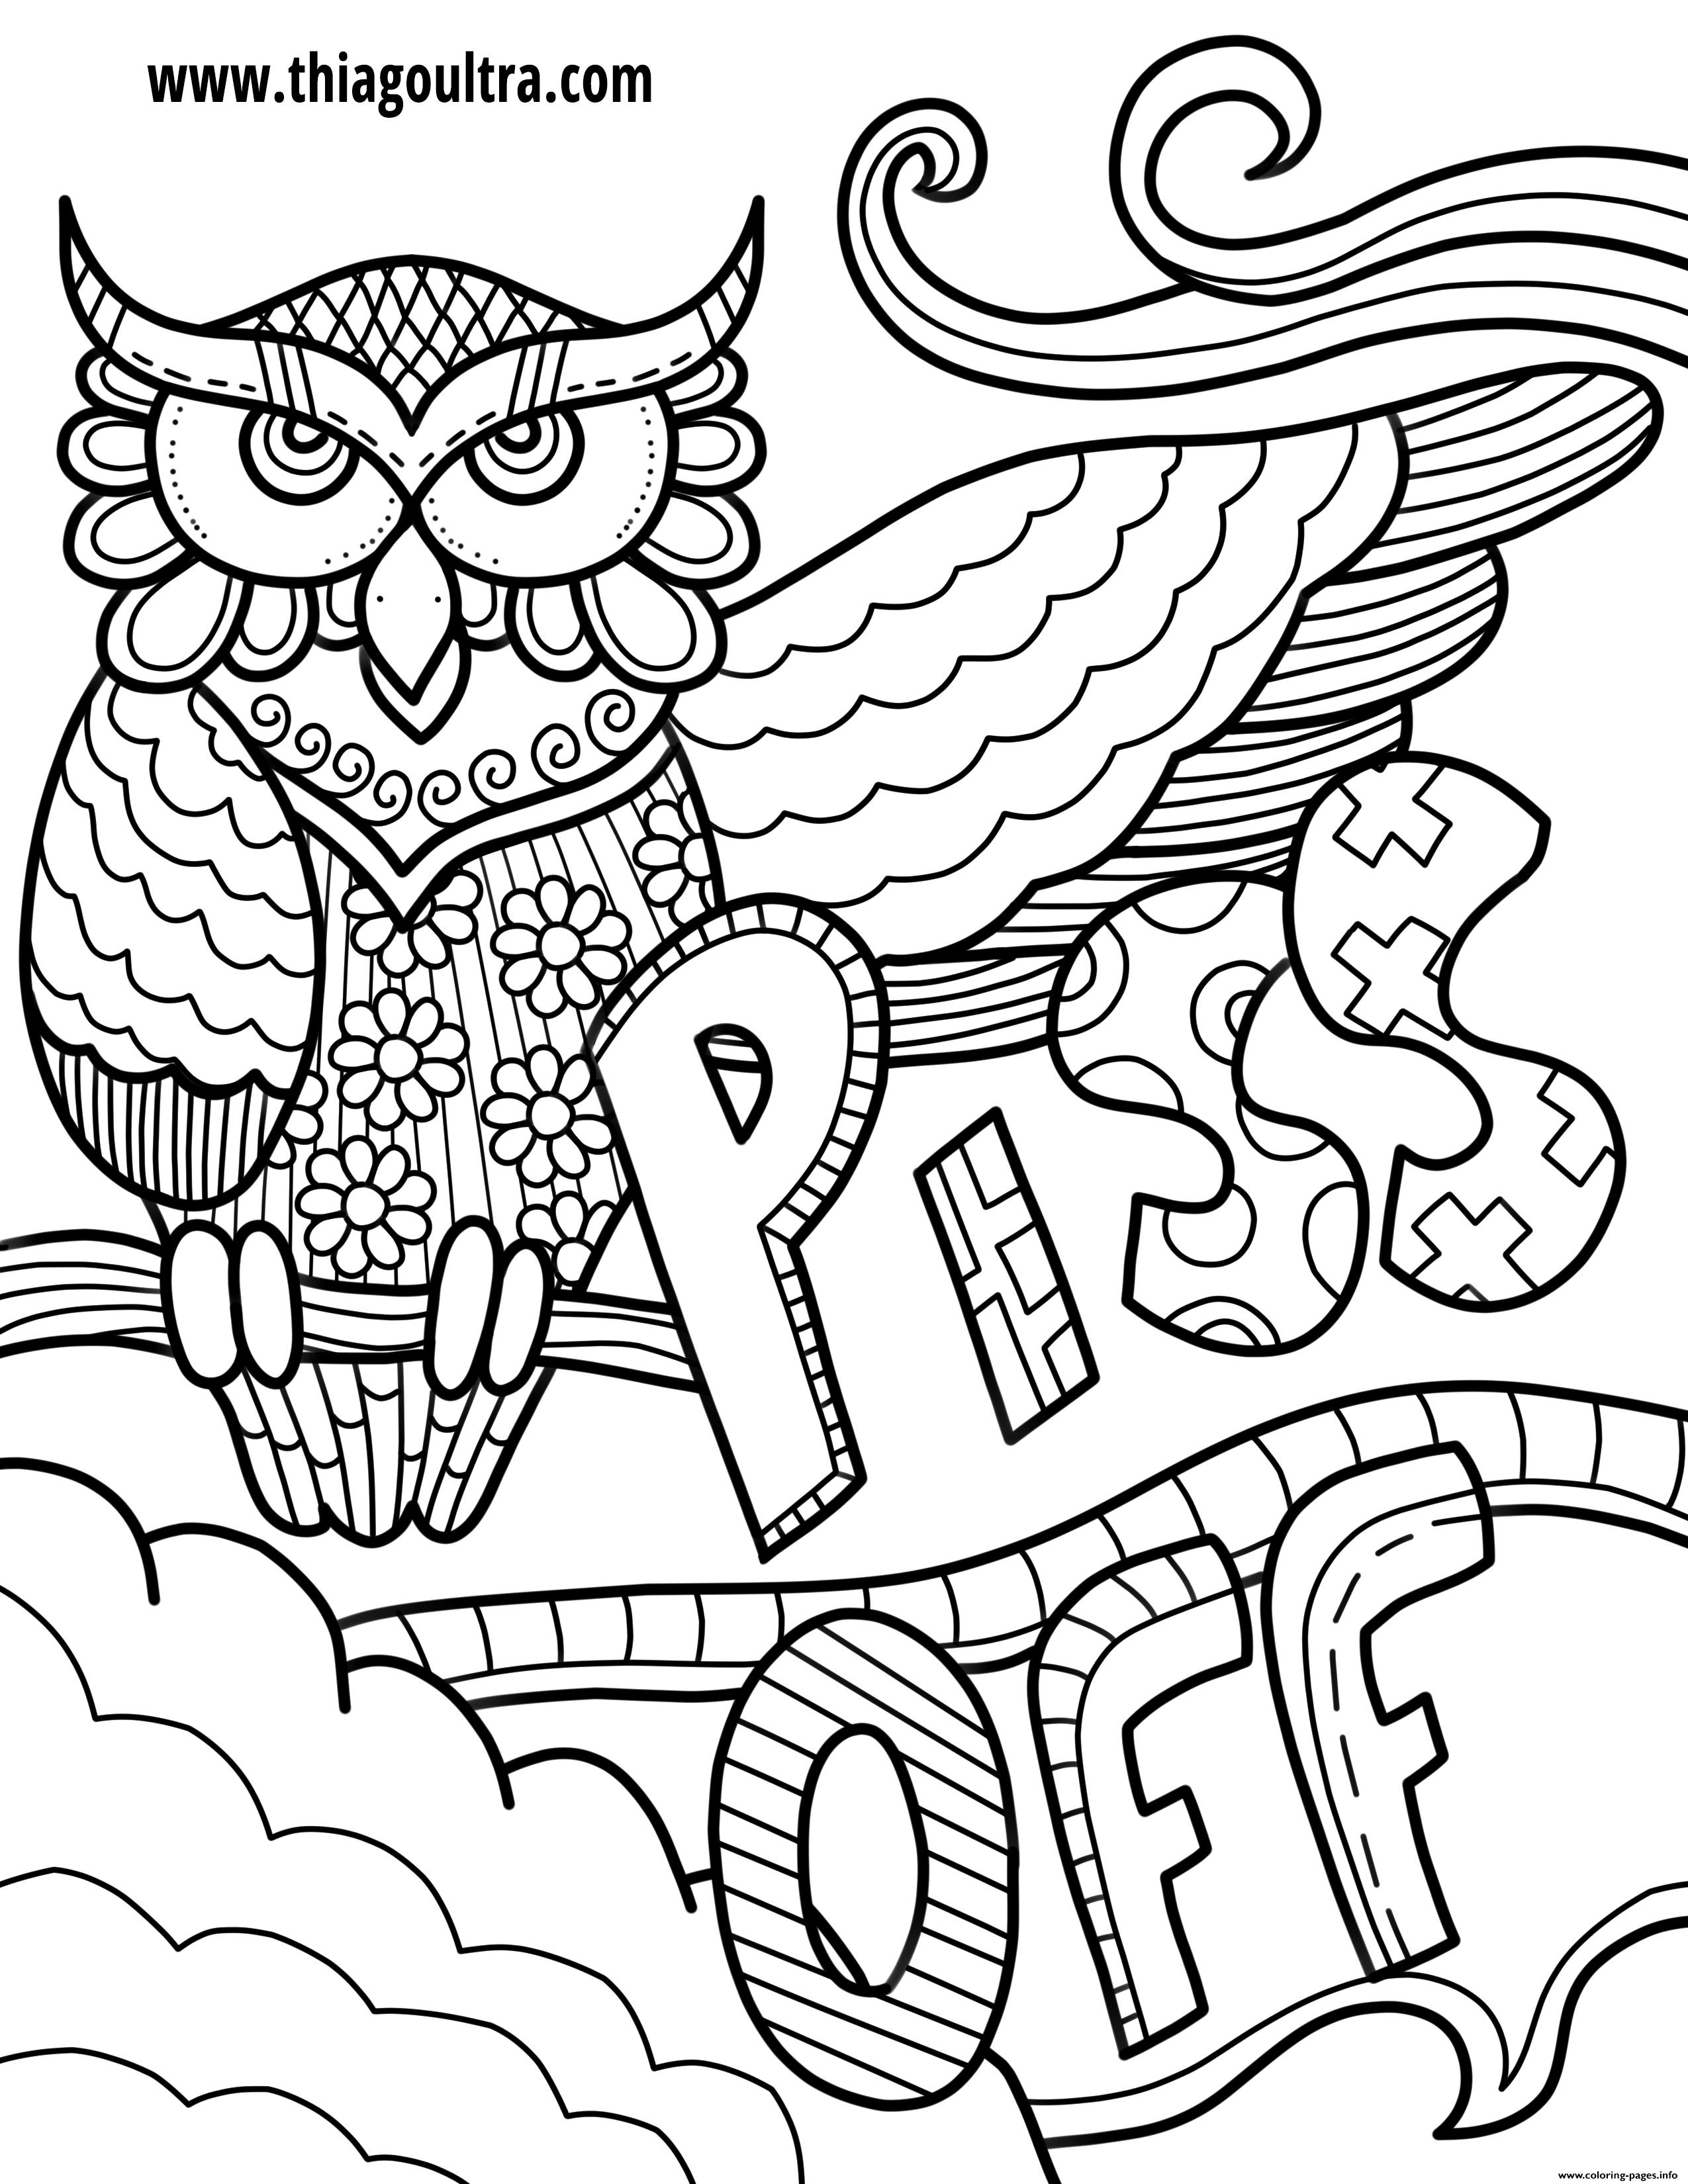 Piss Off Swear Word Coloring Pages